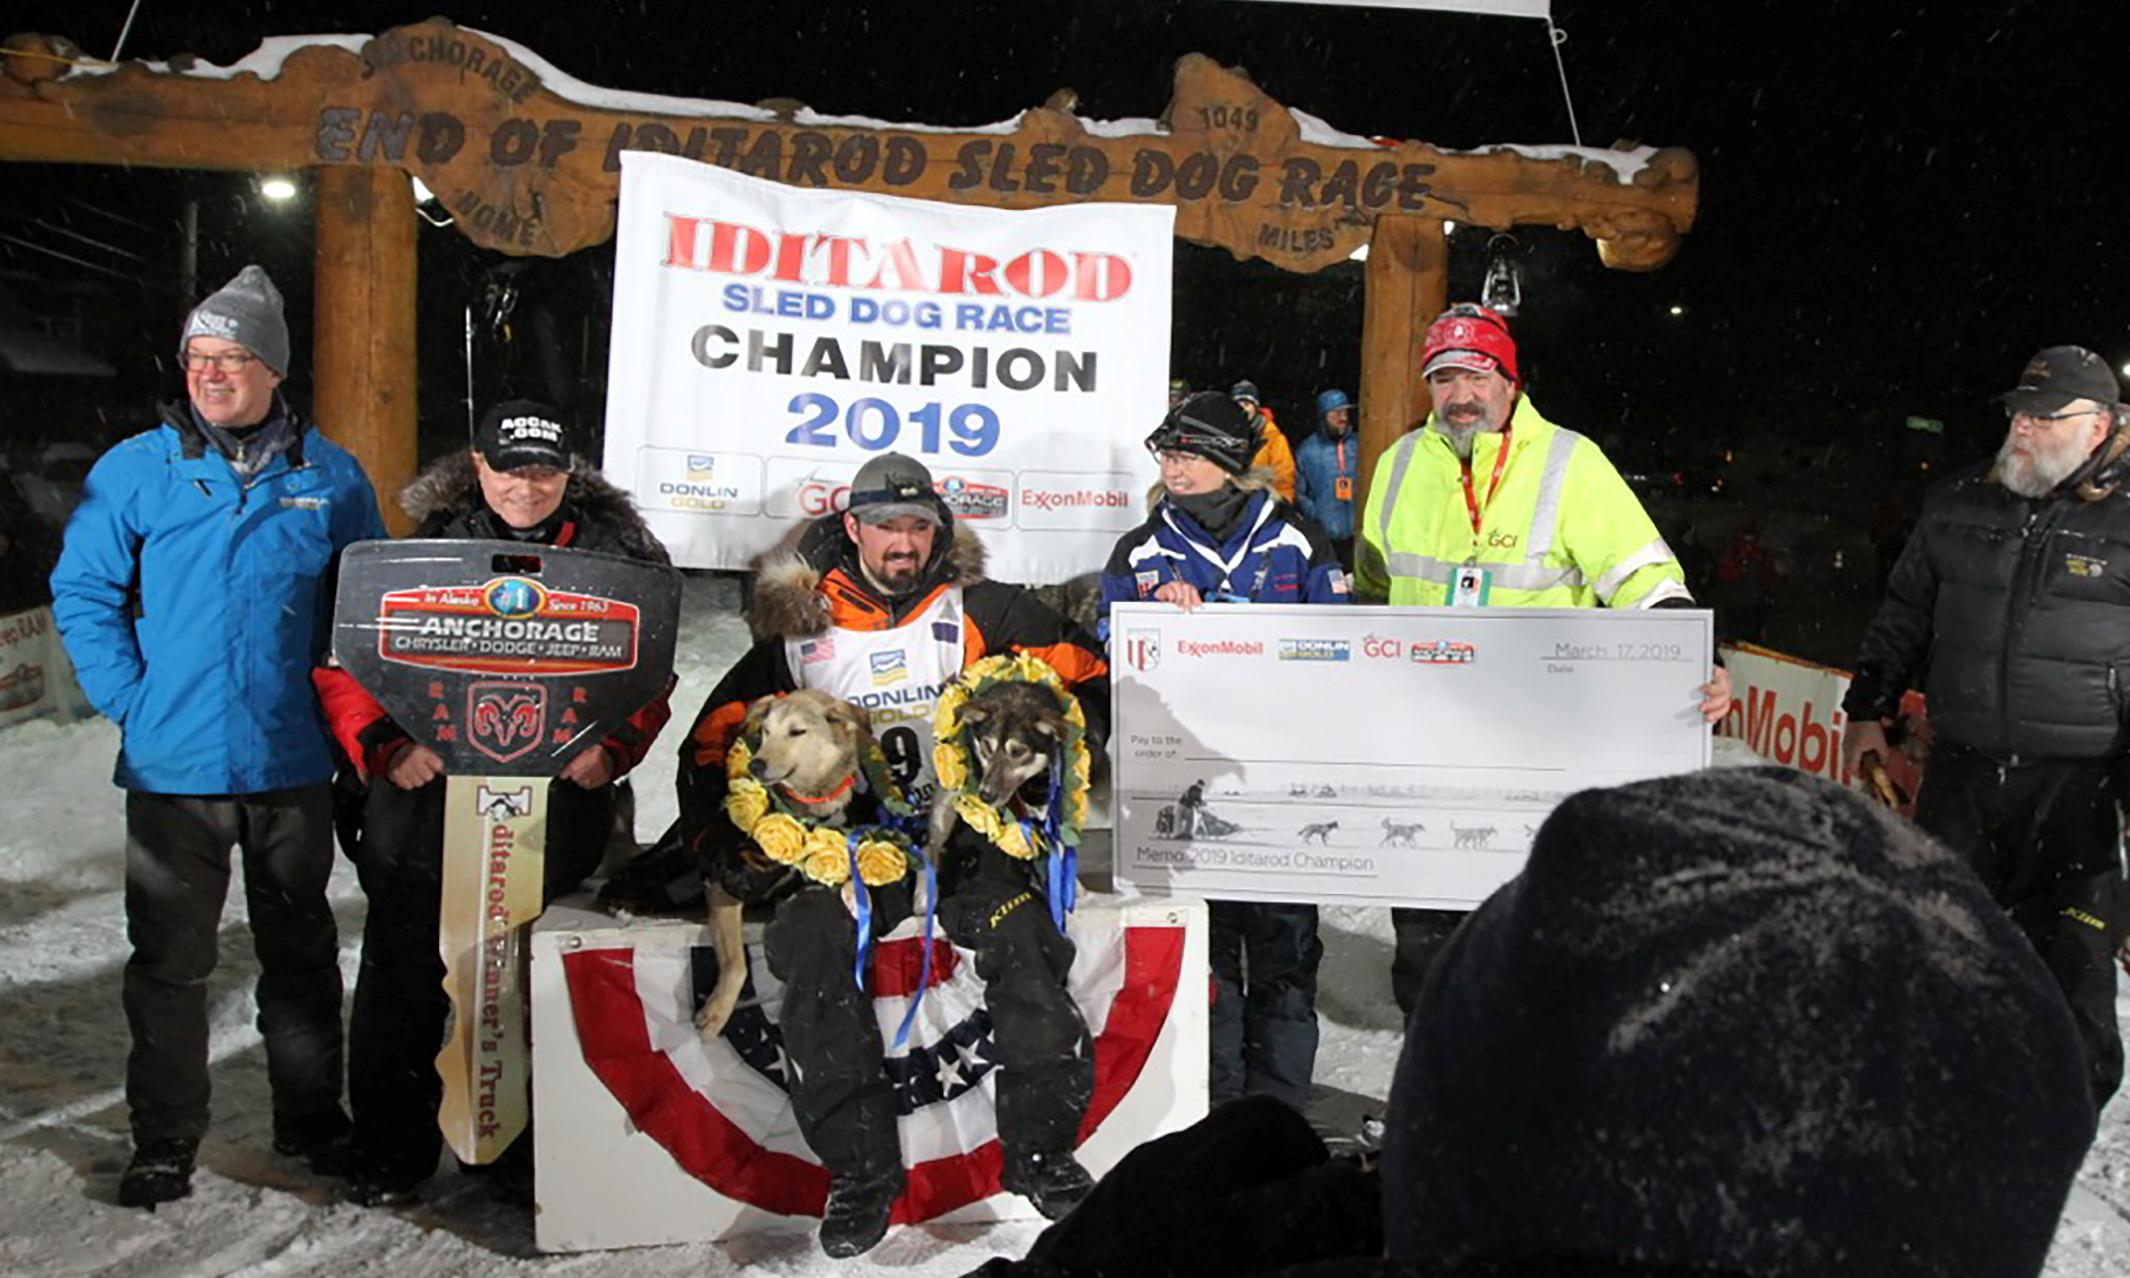 Iditarod 2019: Alaskan Native musher Pete Kaiser wins race in one of closest finishes ever